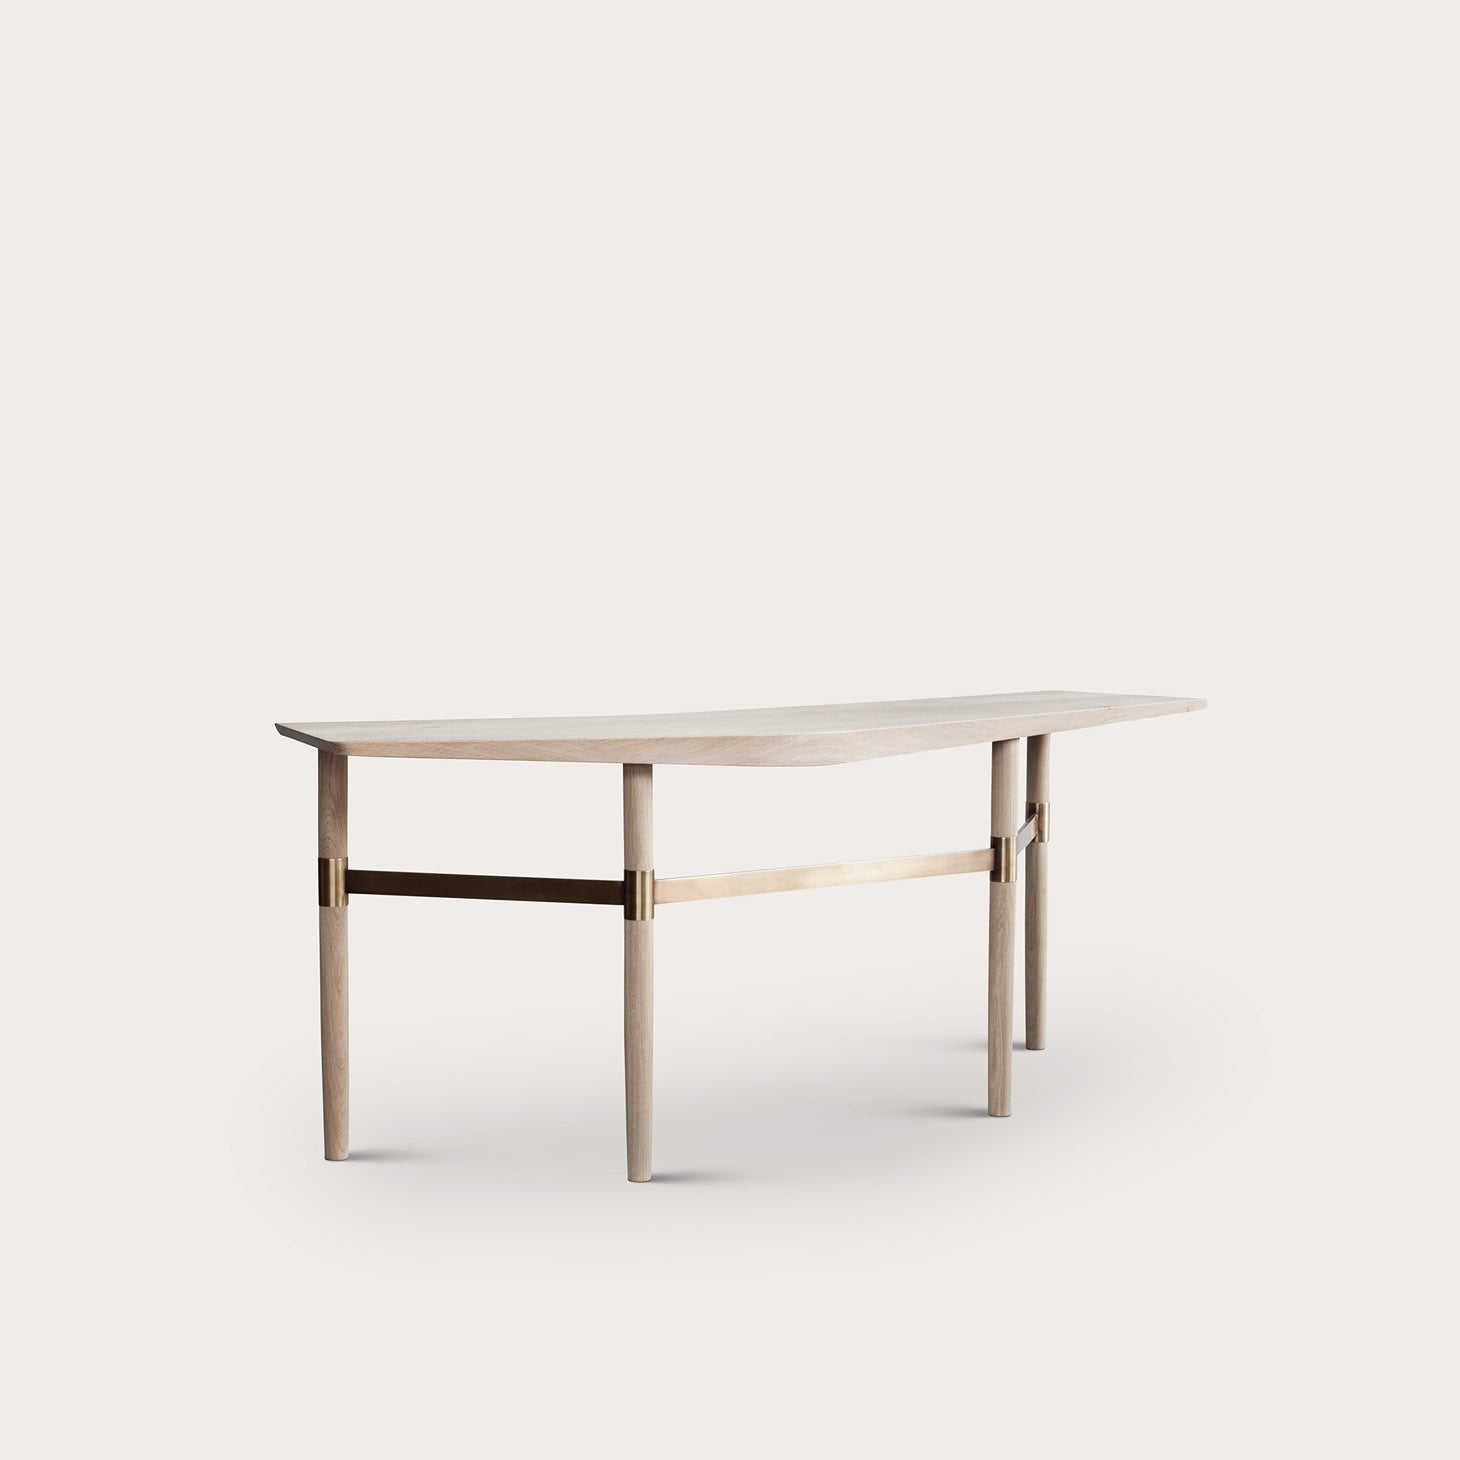 Darling Point Desk Tables Yabu Pushelberg Designer Furniture Sku: 416-230-10108